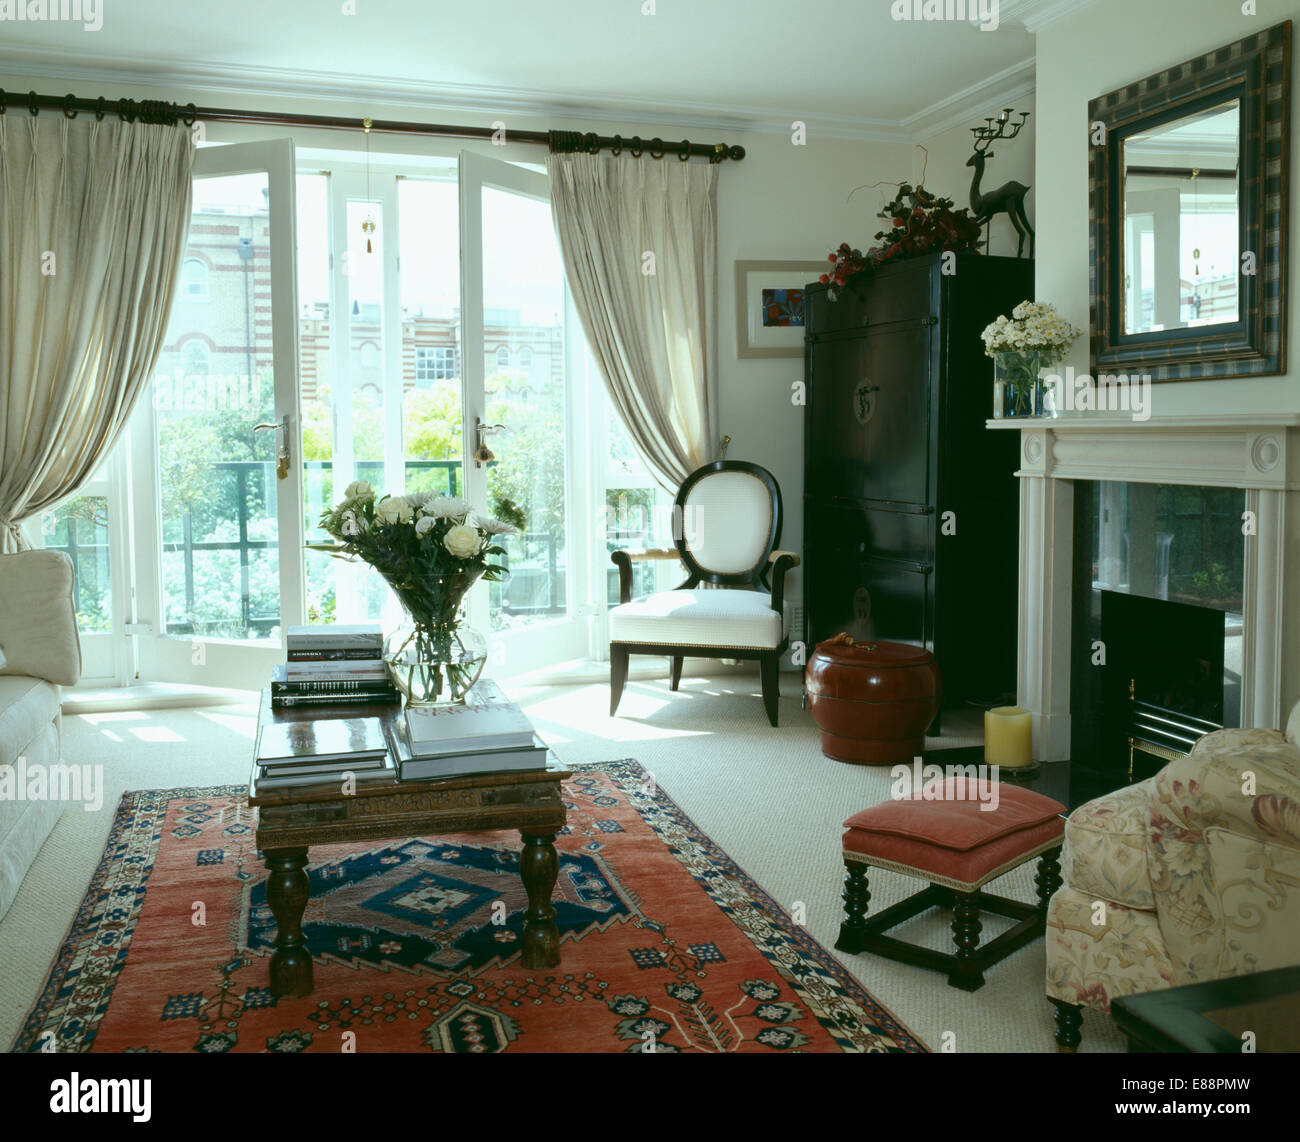 Coffee Table On Red Oriental Rug In Apartment Living Room With Open French  Doors To Balcony With View Of The City